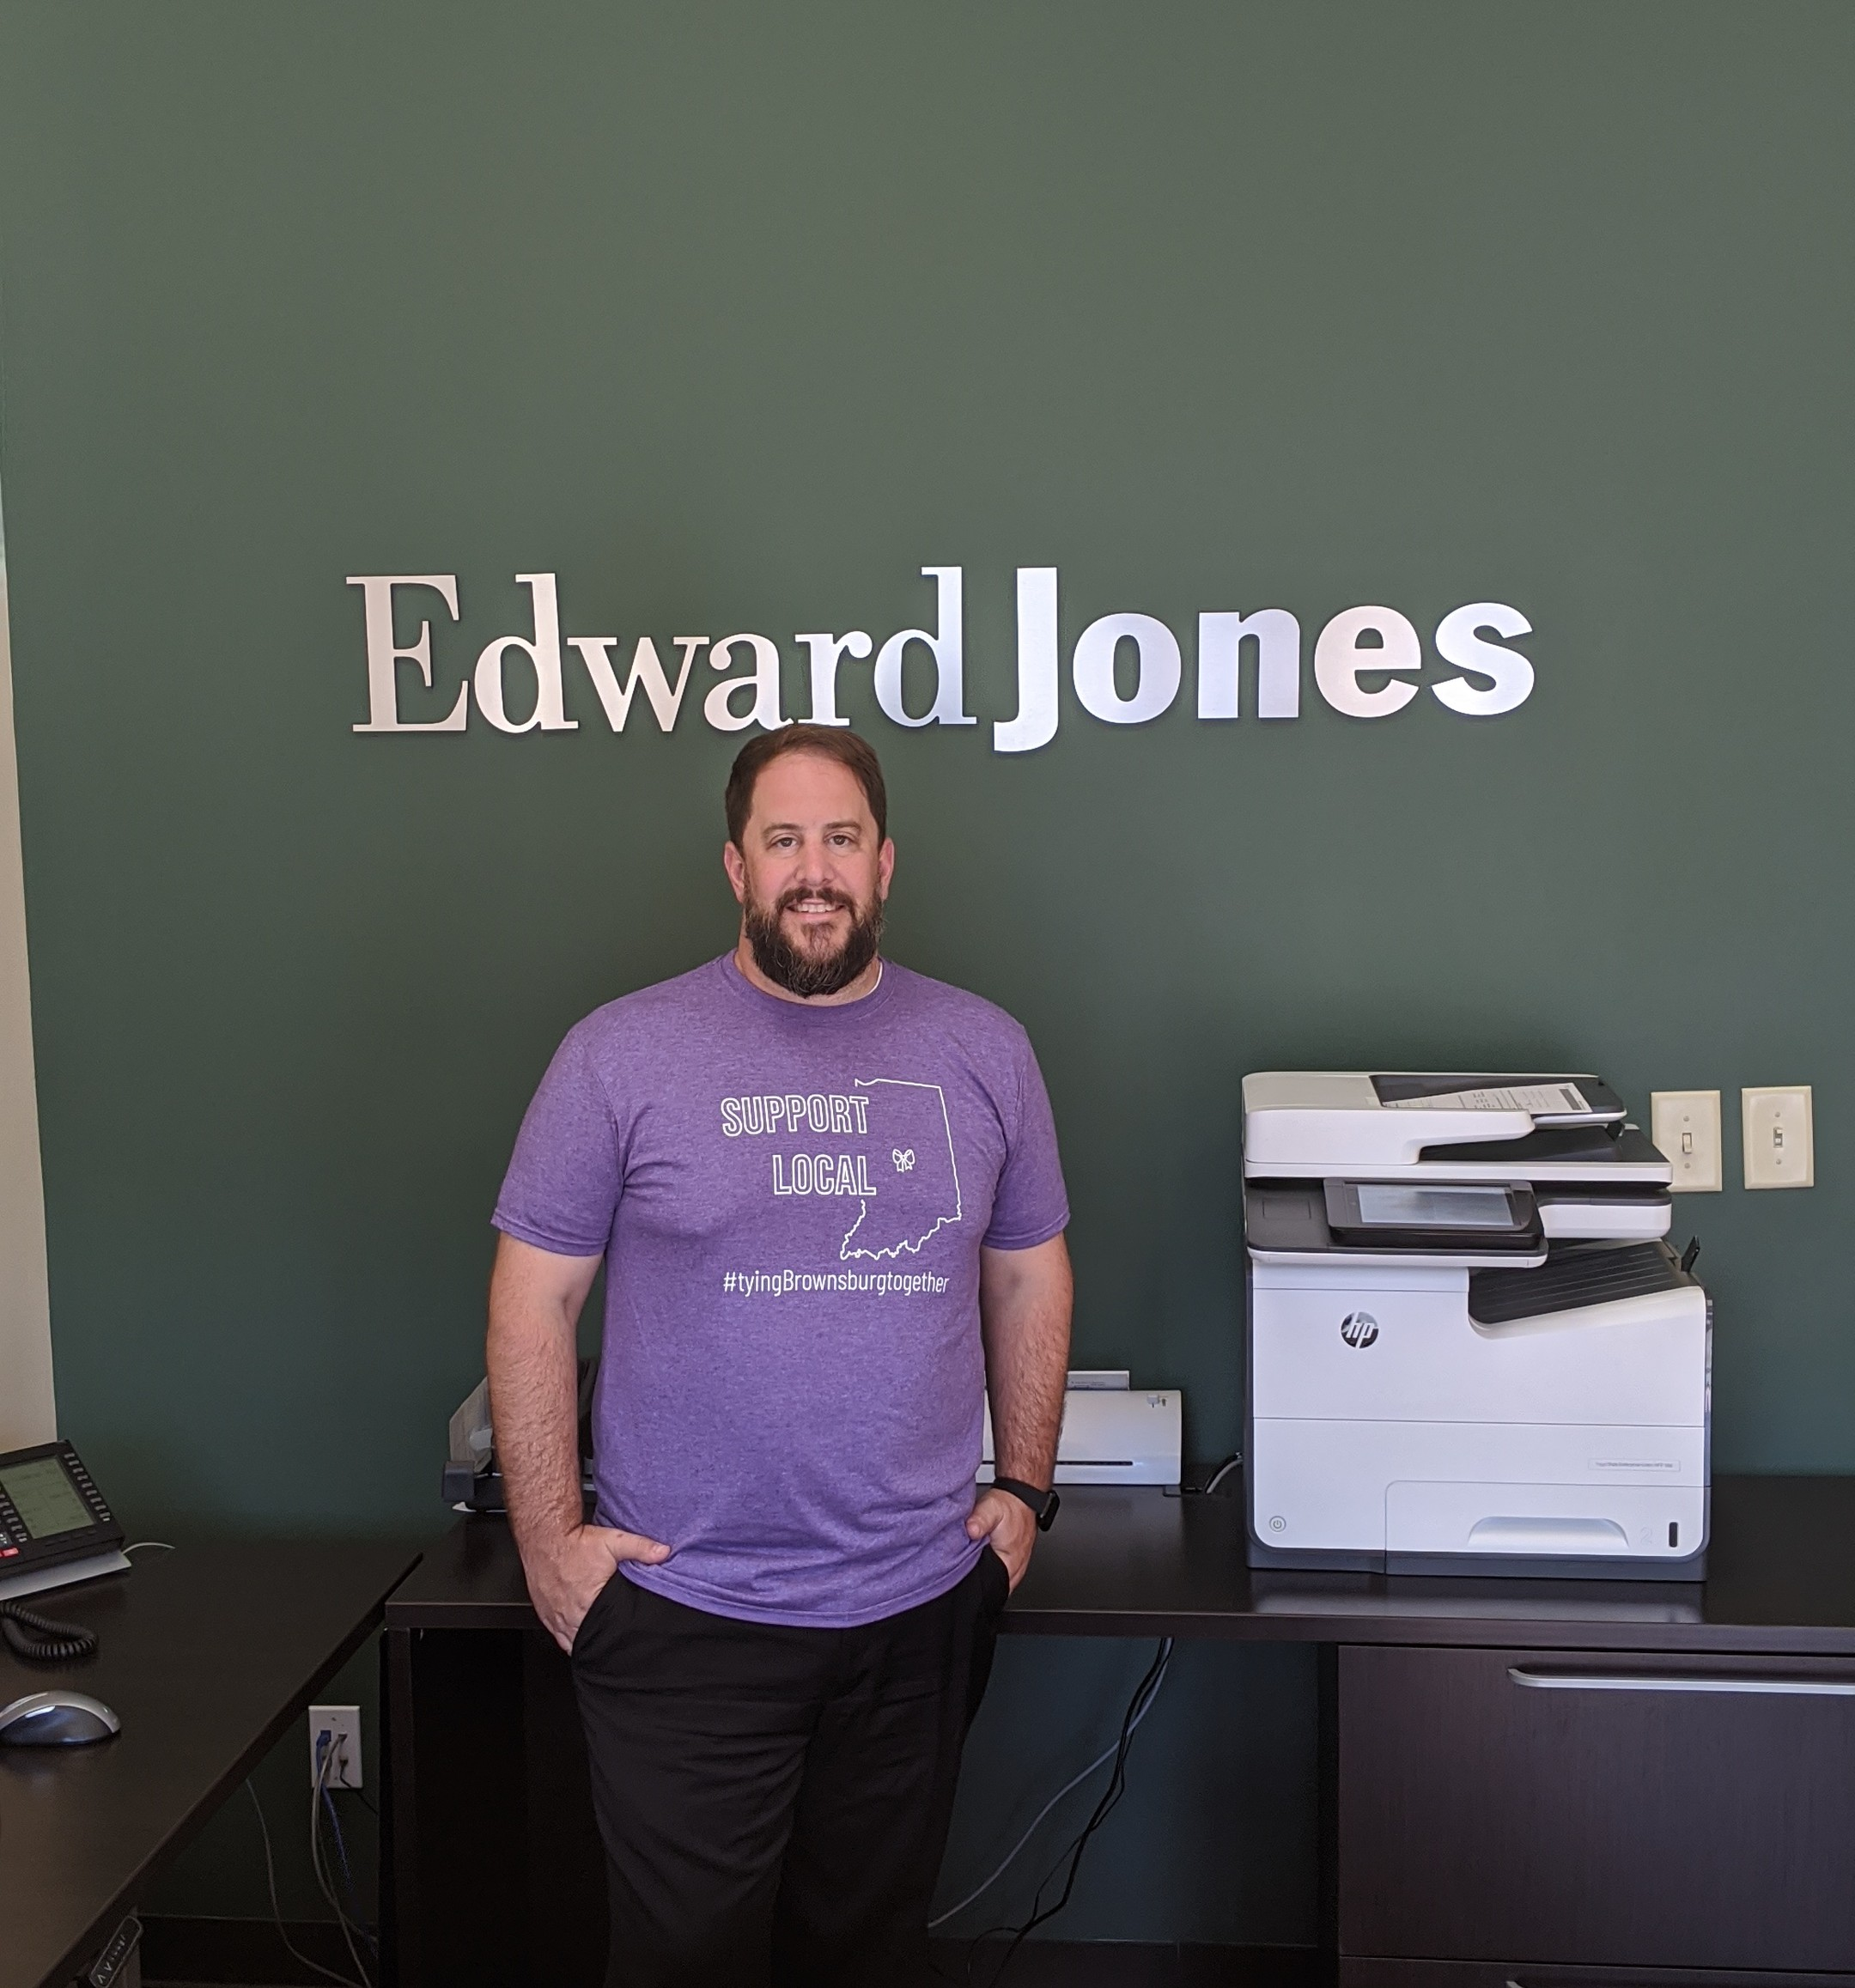 Edward-Jones-Sam.jpg